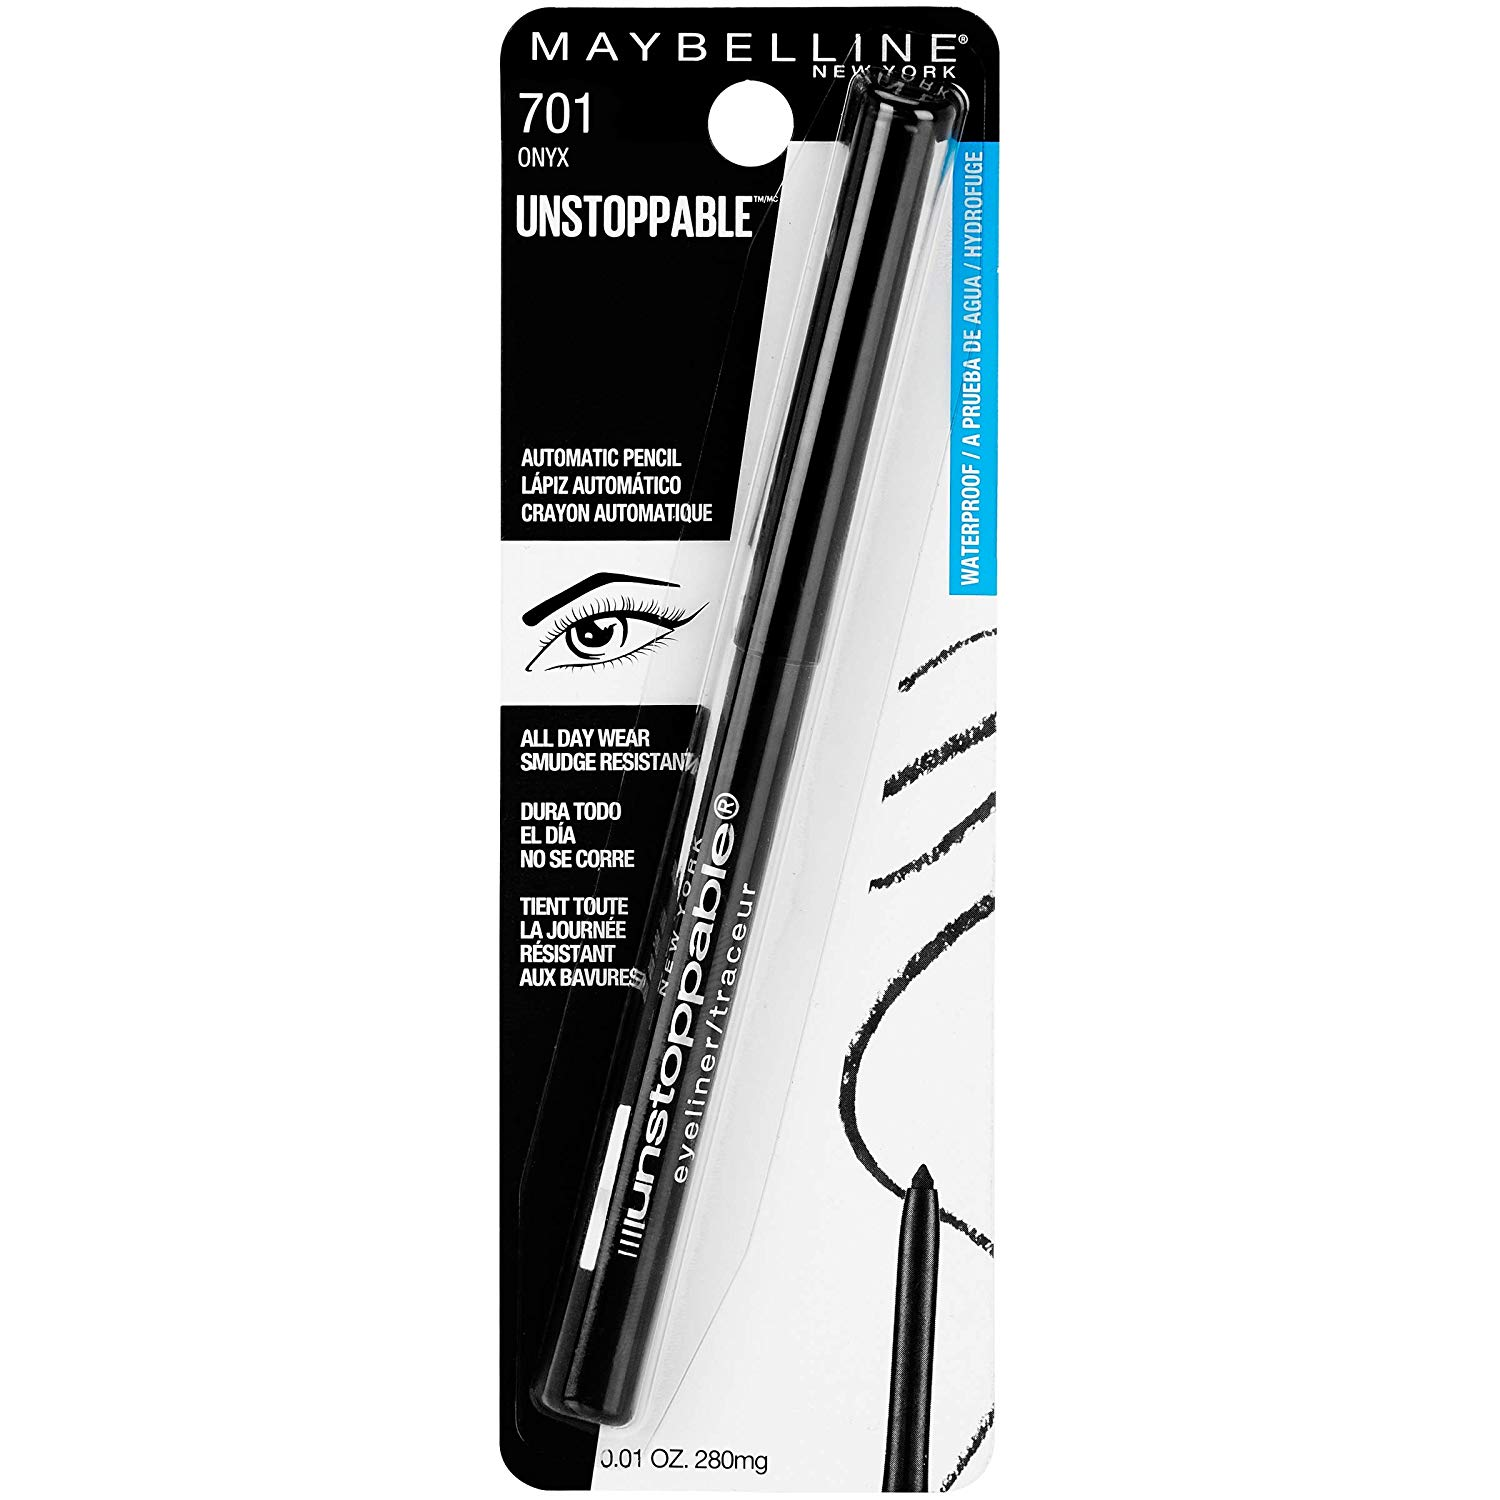 Review of Maybelline Unstoppable Eyeliner, Onyx, 0.01 oz.